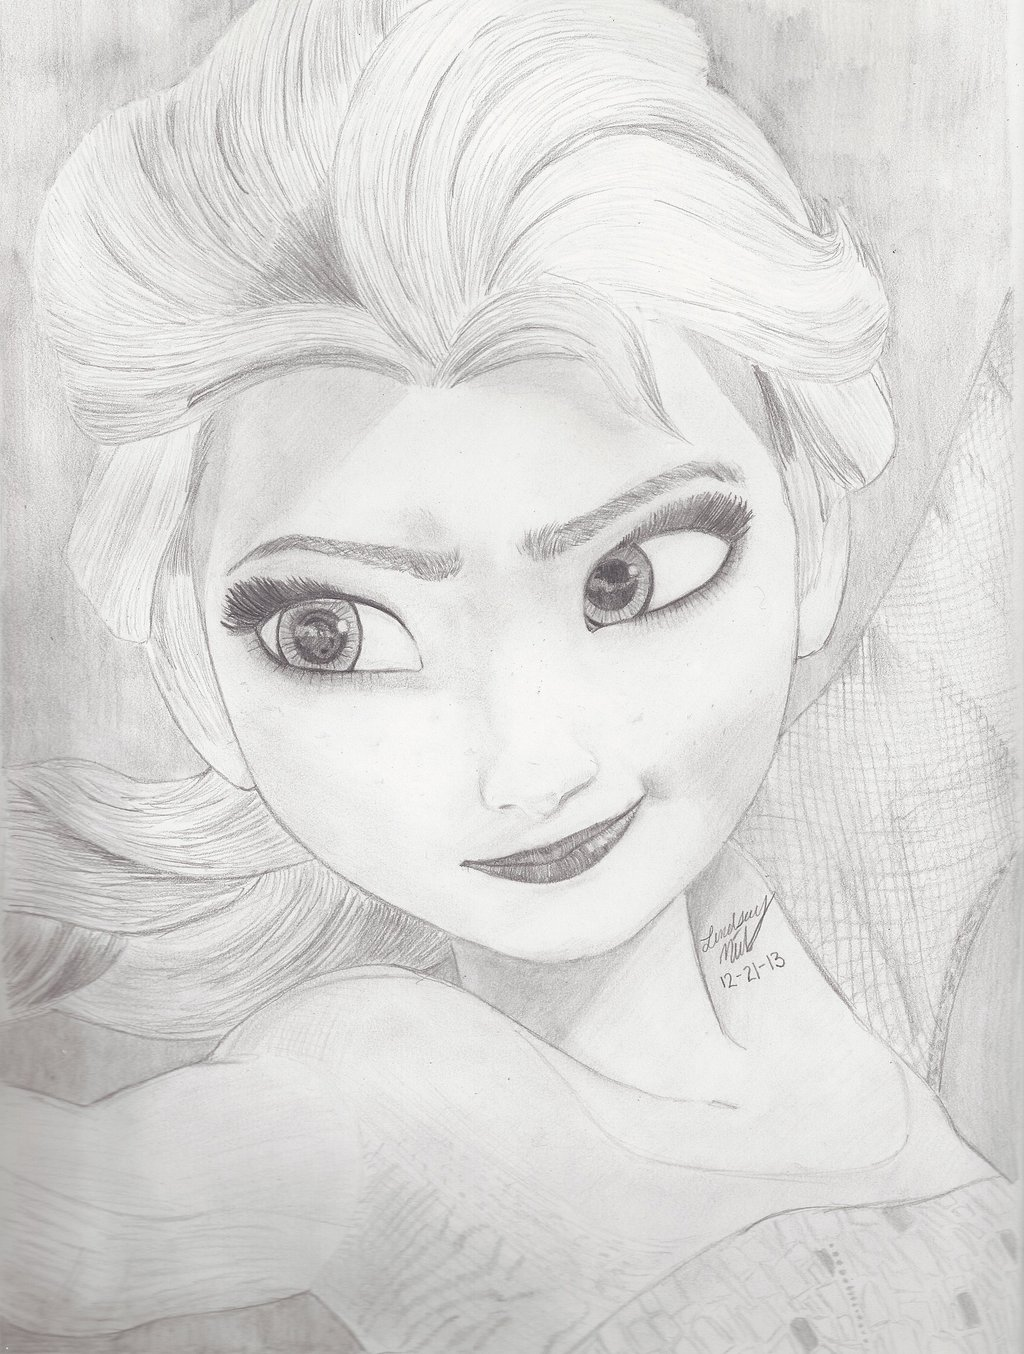 Drawn frozen Disney Elsa to want Frozen